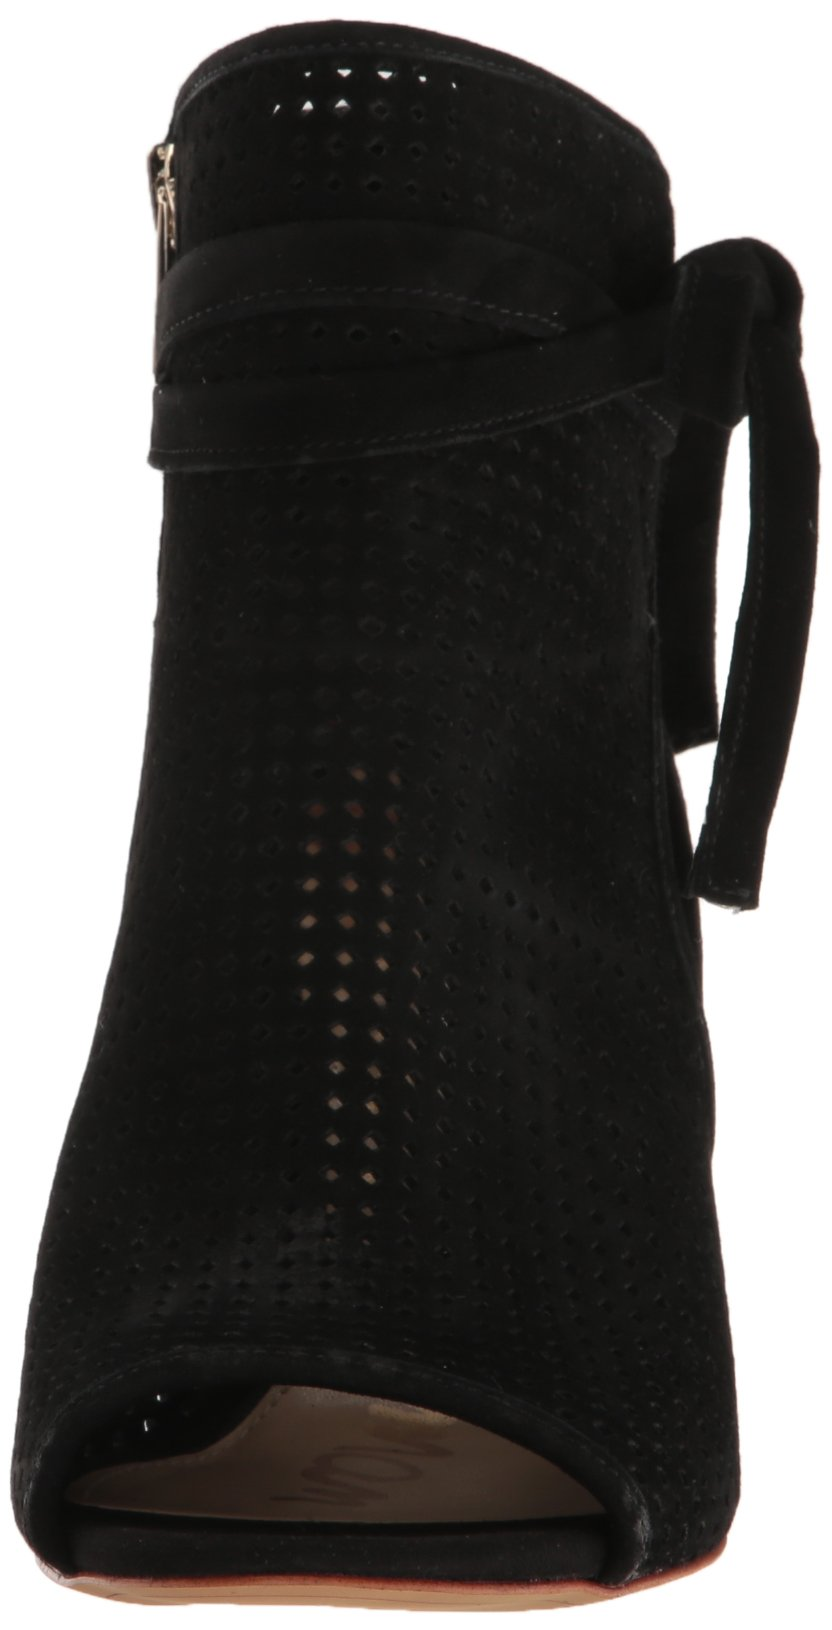 Sam Edelman Women's Ellery, Black, 8.5 M US by Sam Edelman (Image #4)